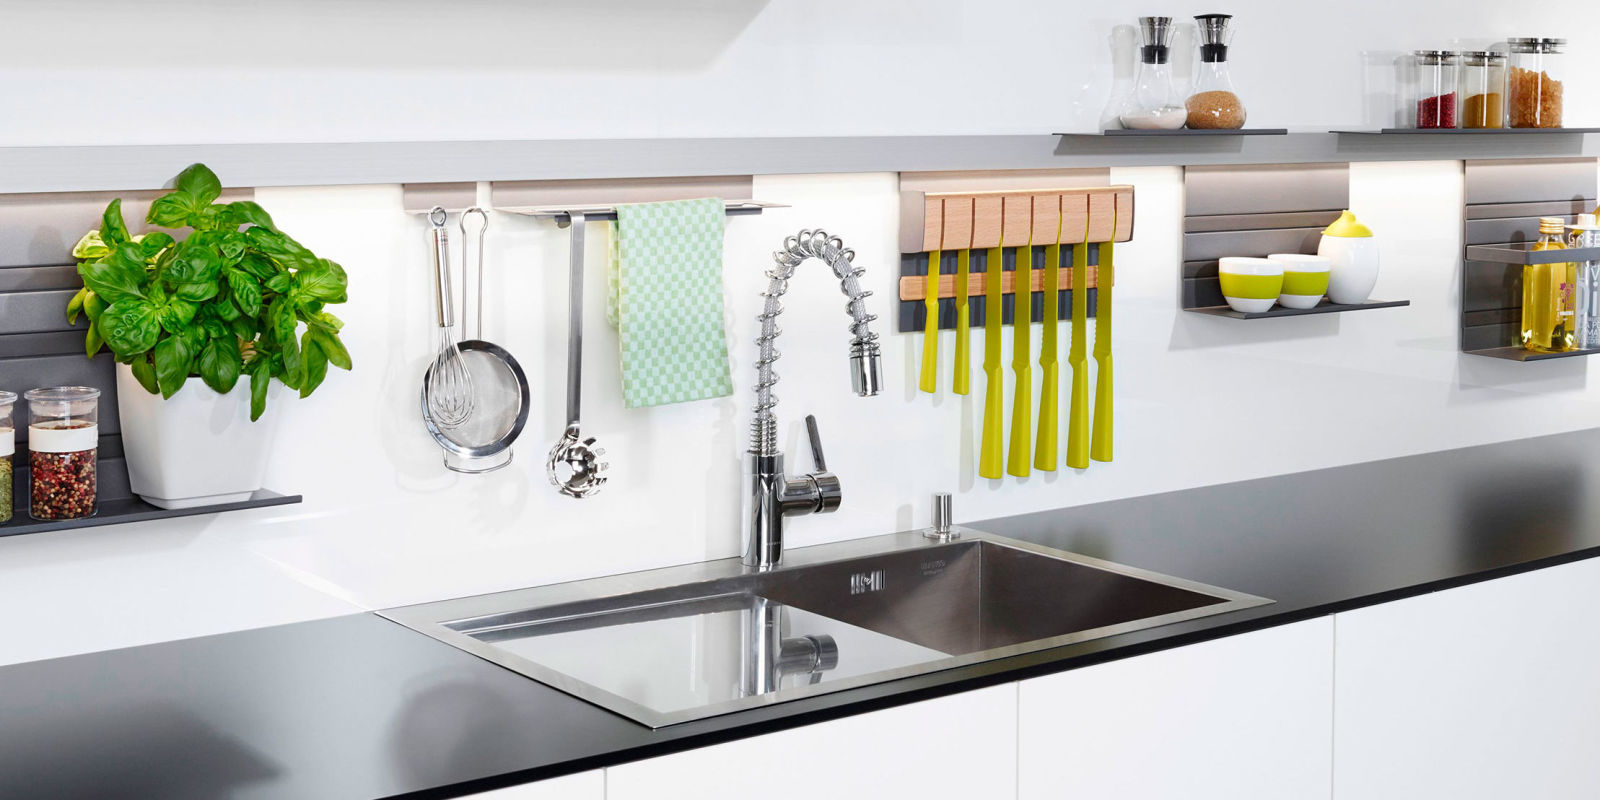 Clever kitchen storage ideas to clear kitchen clutter for Clever kitchen ideas